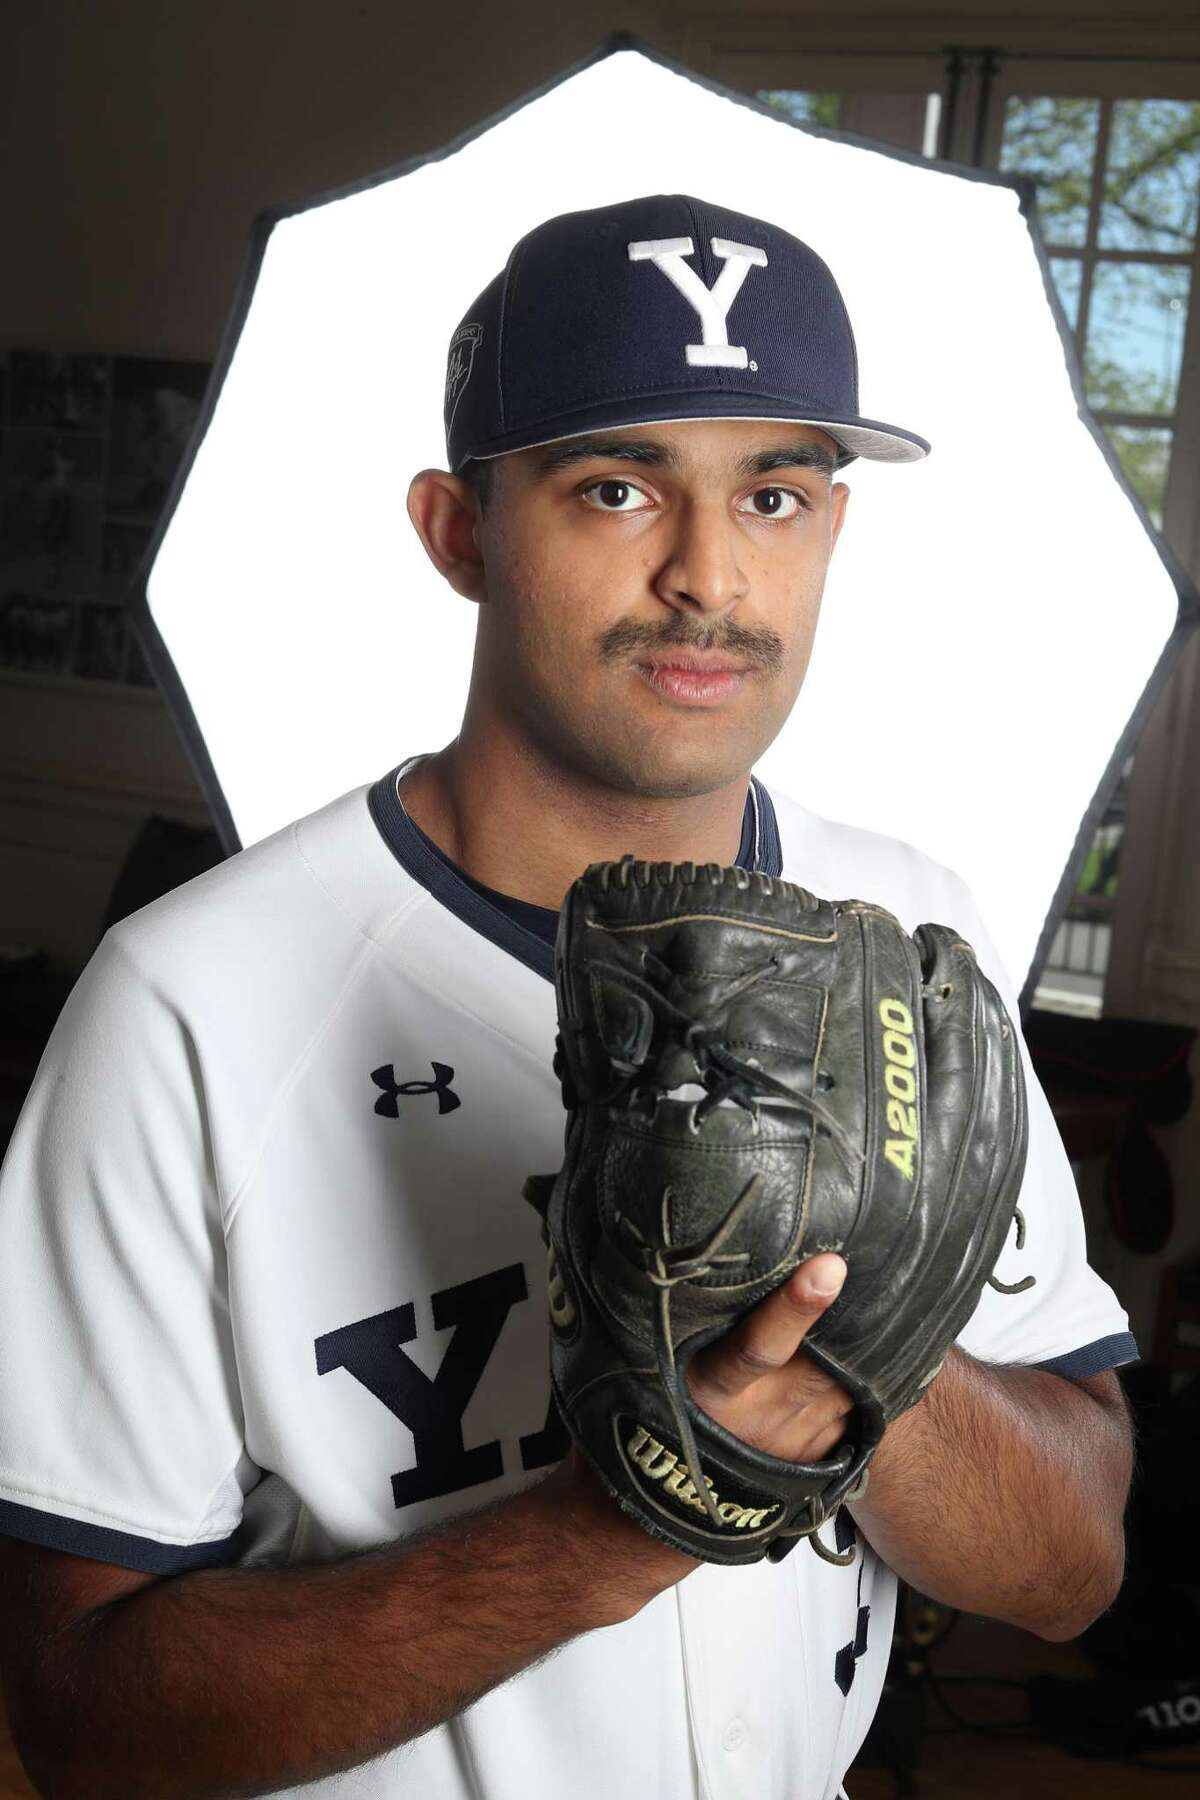 Rohan Handa has risen from a good reliever in Yale's bullpen to a fifth-round MLB Draft pick over the past 16 months.